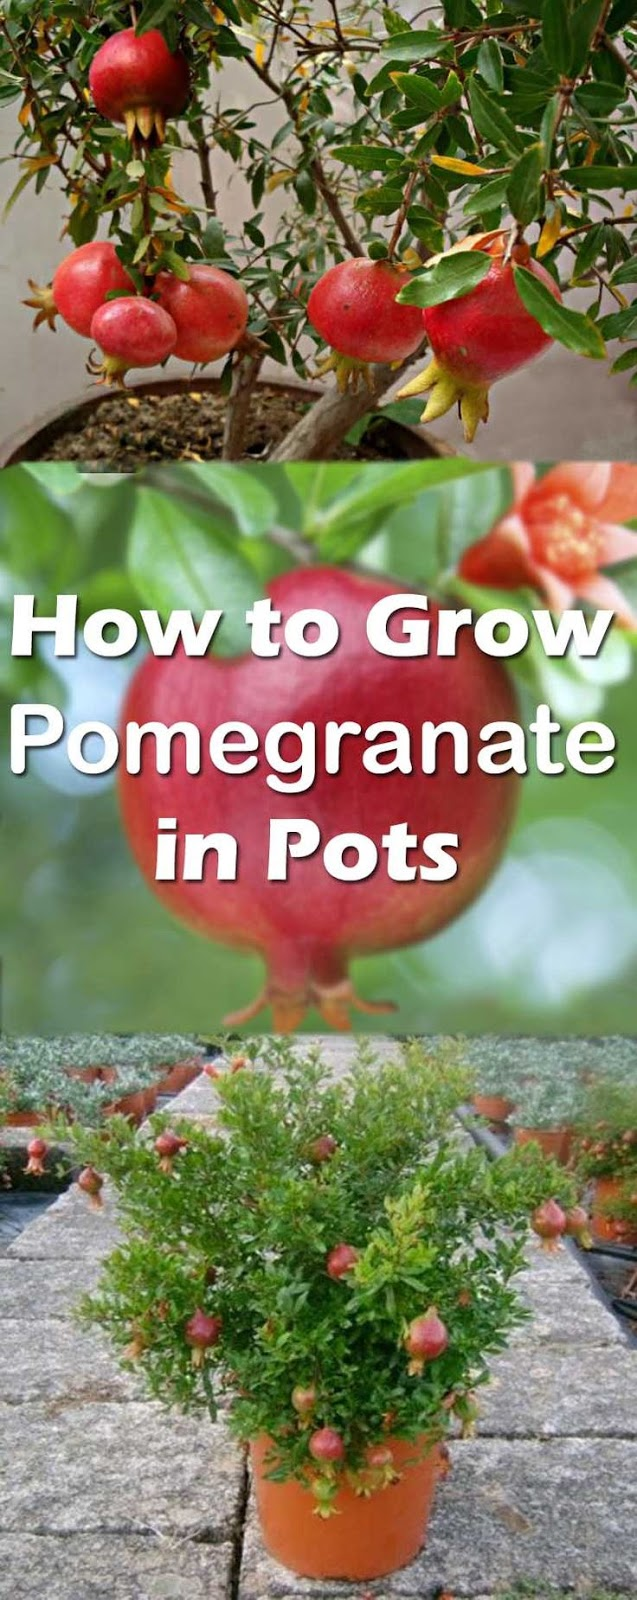 How To Grow It And How To Use It For: How To Grow Pomegranate Tree In Pot.. Pomegranate Is One